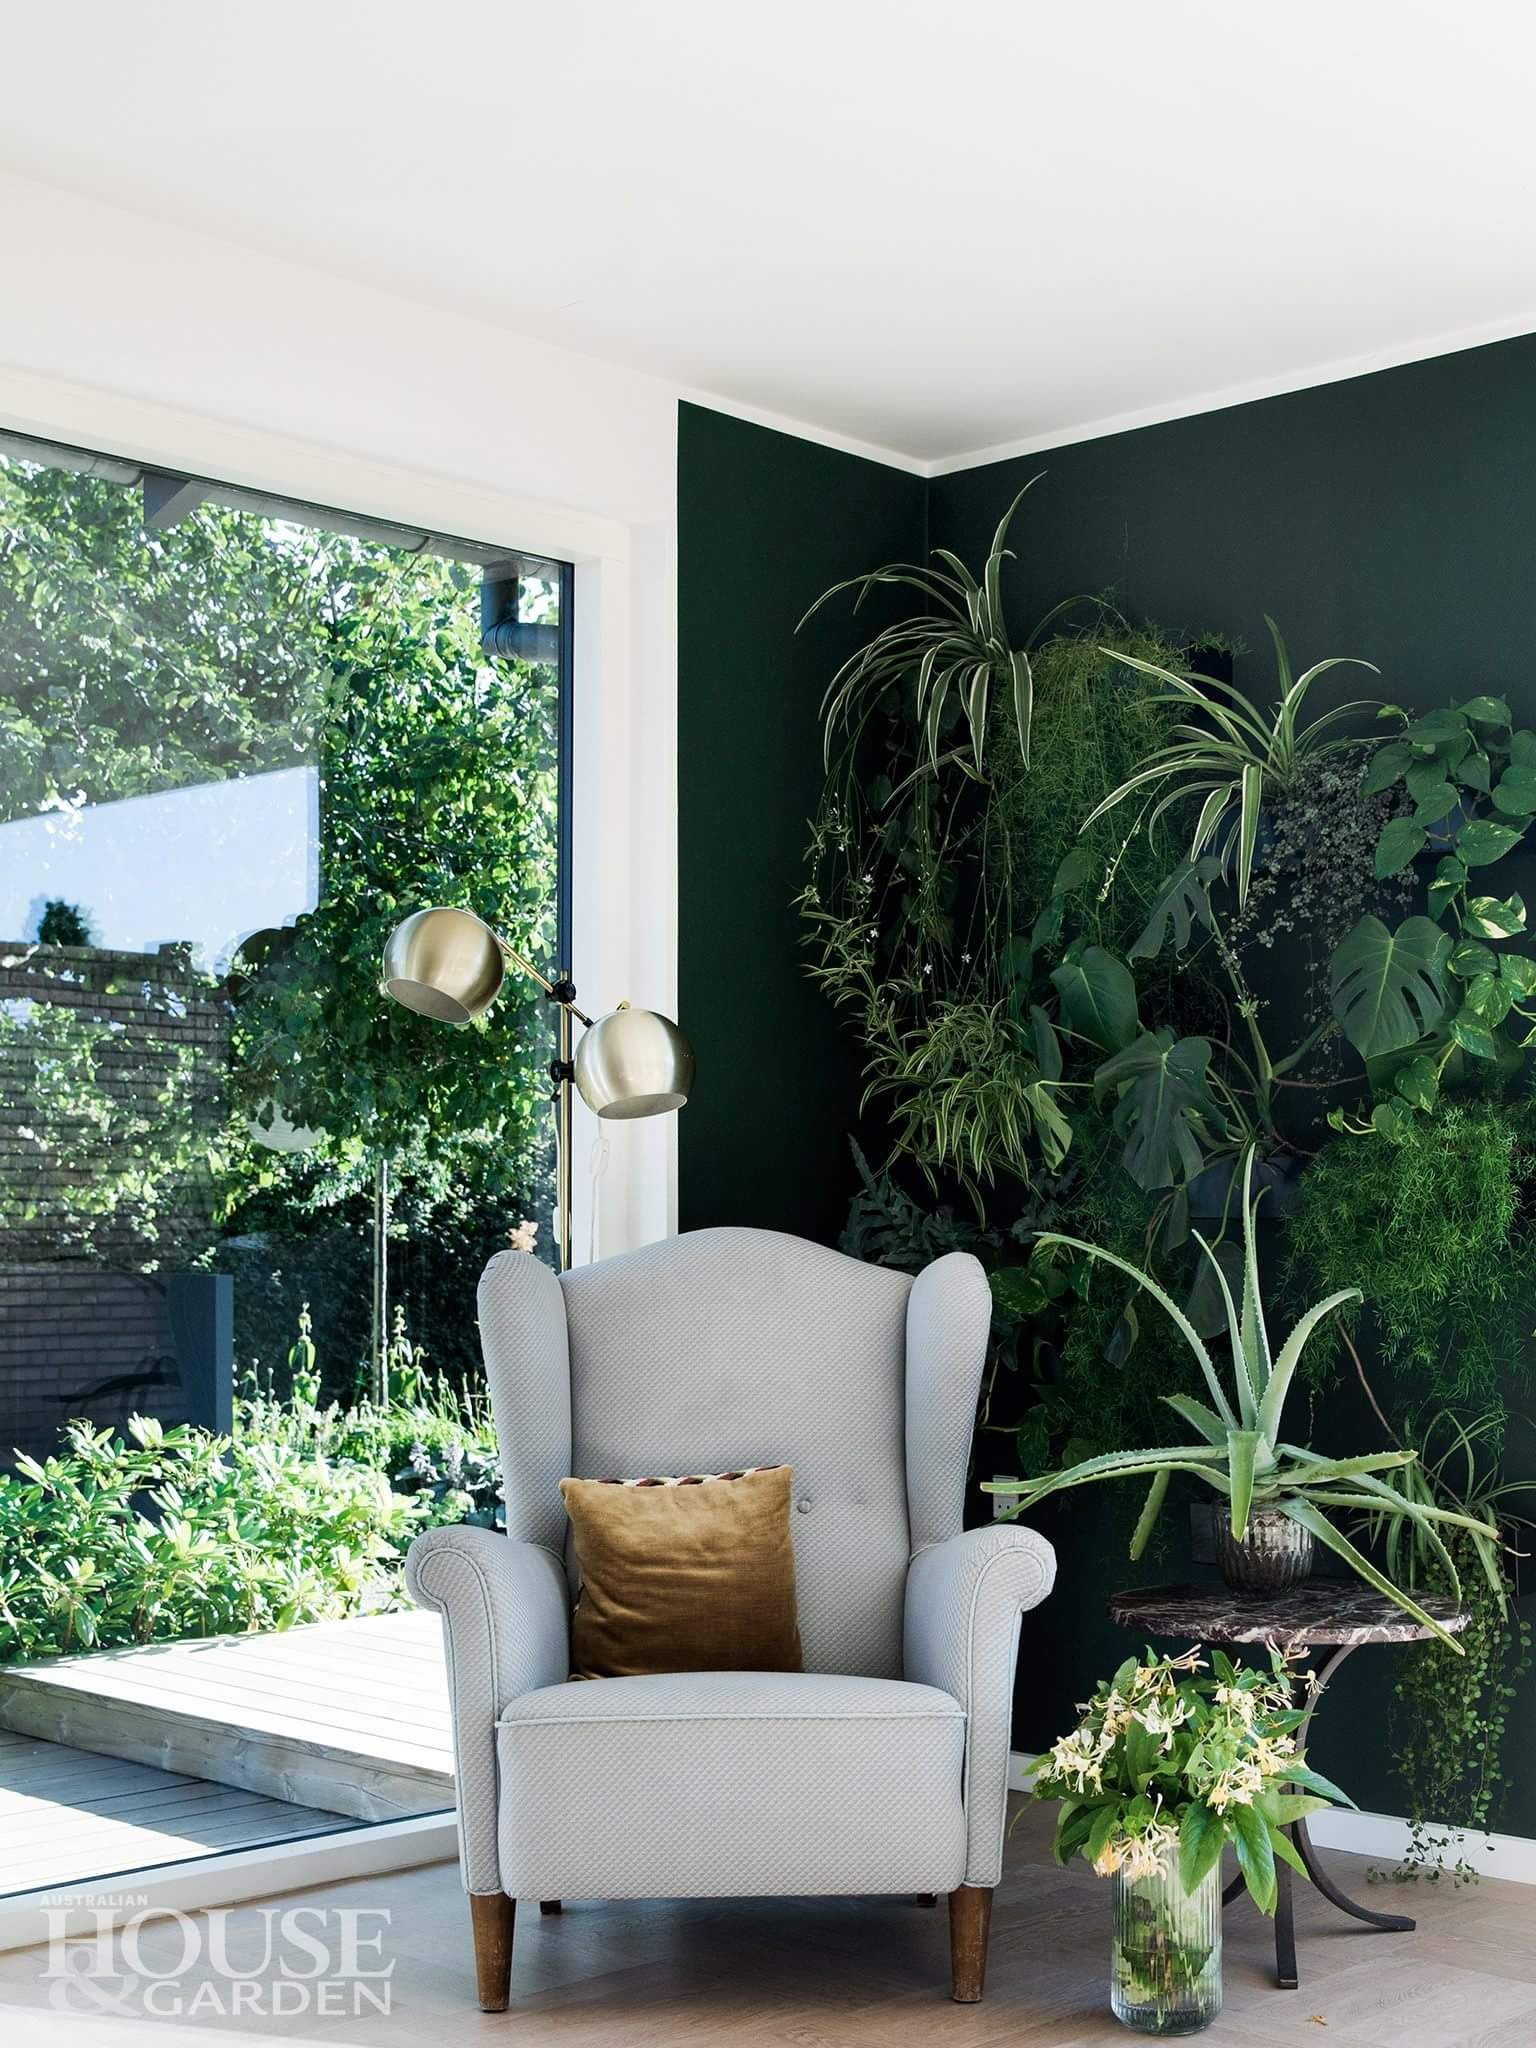 Green Living Room Designs: Love The Green Wall With Plants